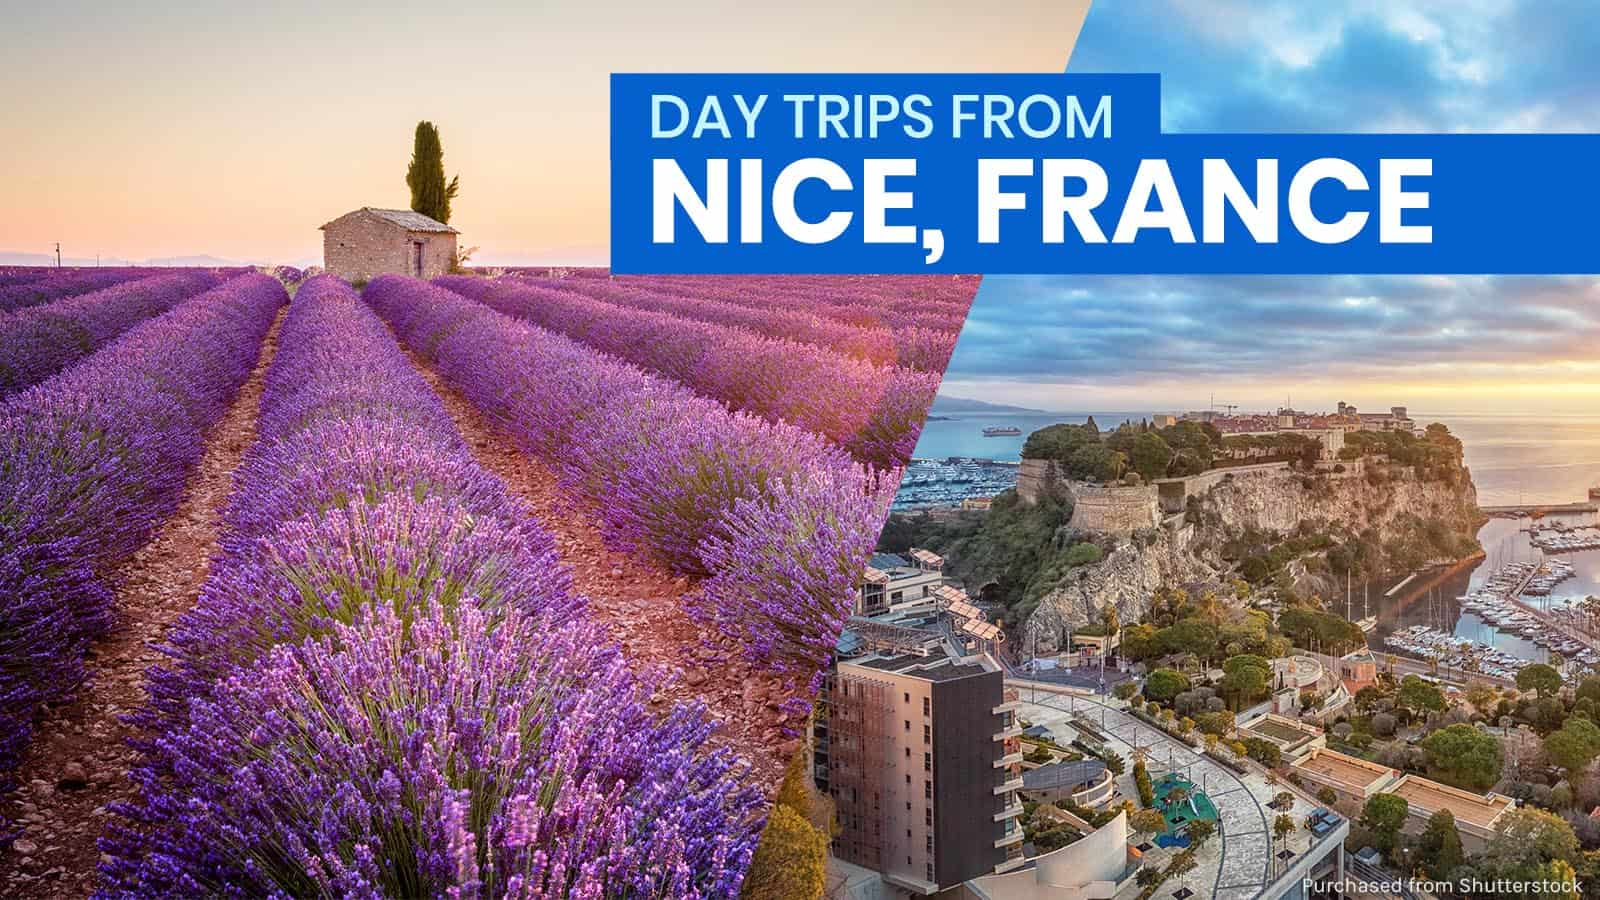 10 DAY TRIP DESTINATIONS FROM NICE, FRANCE